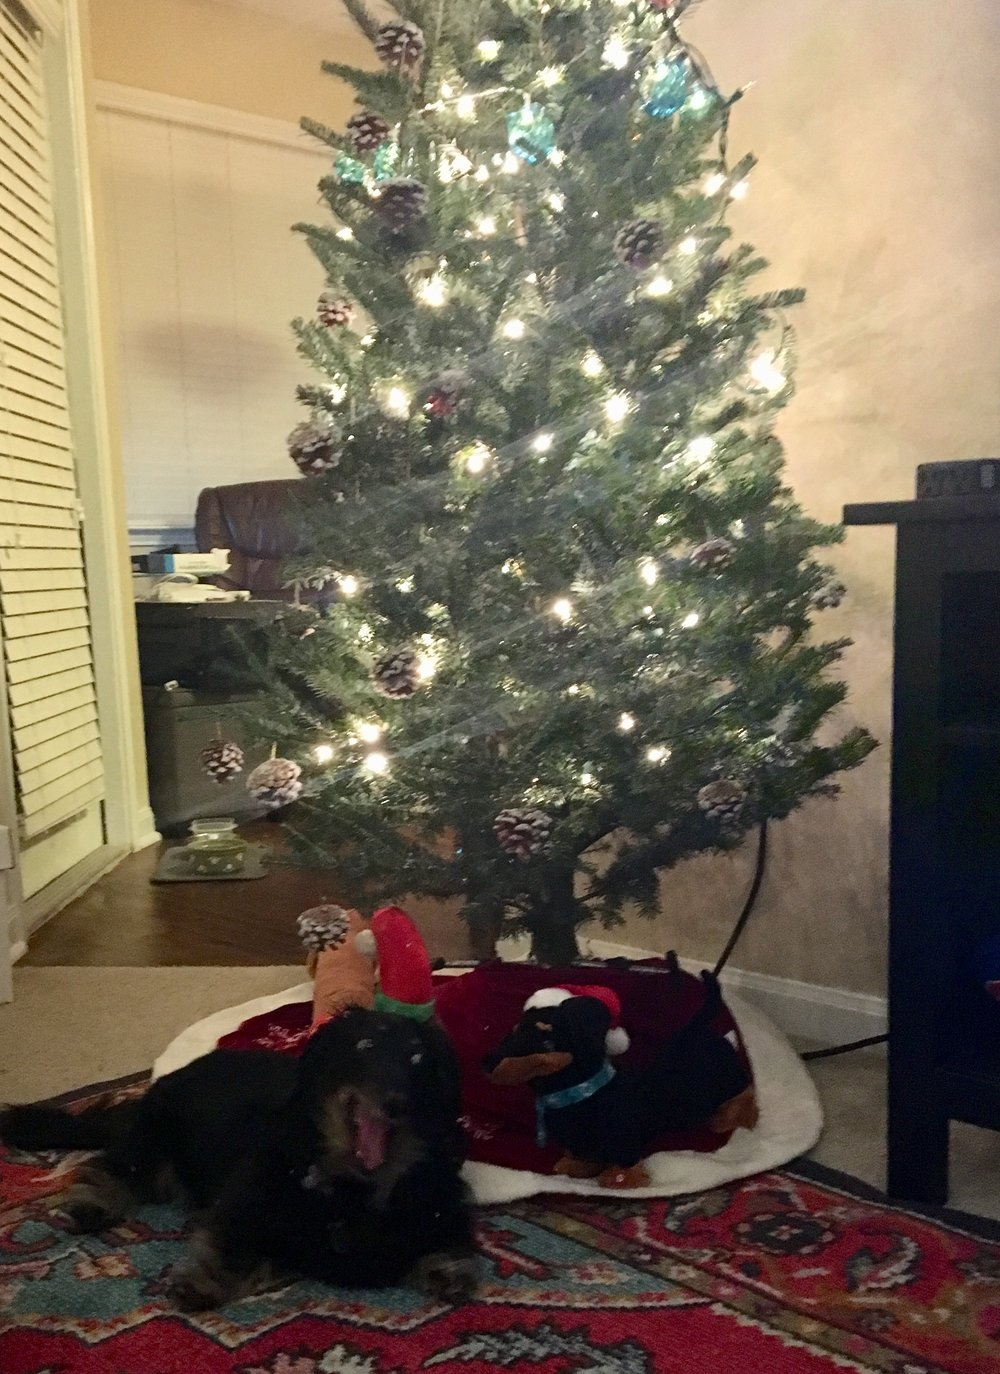 Toby is excited about his new Christmas tree.